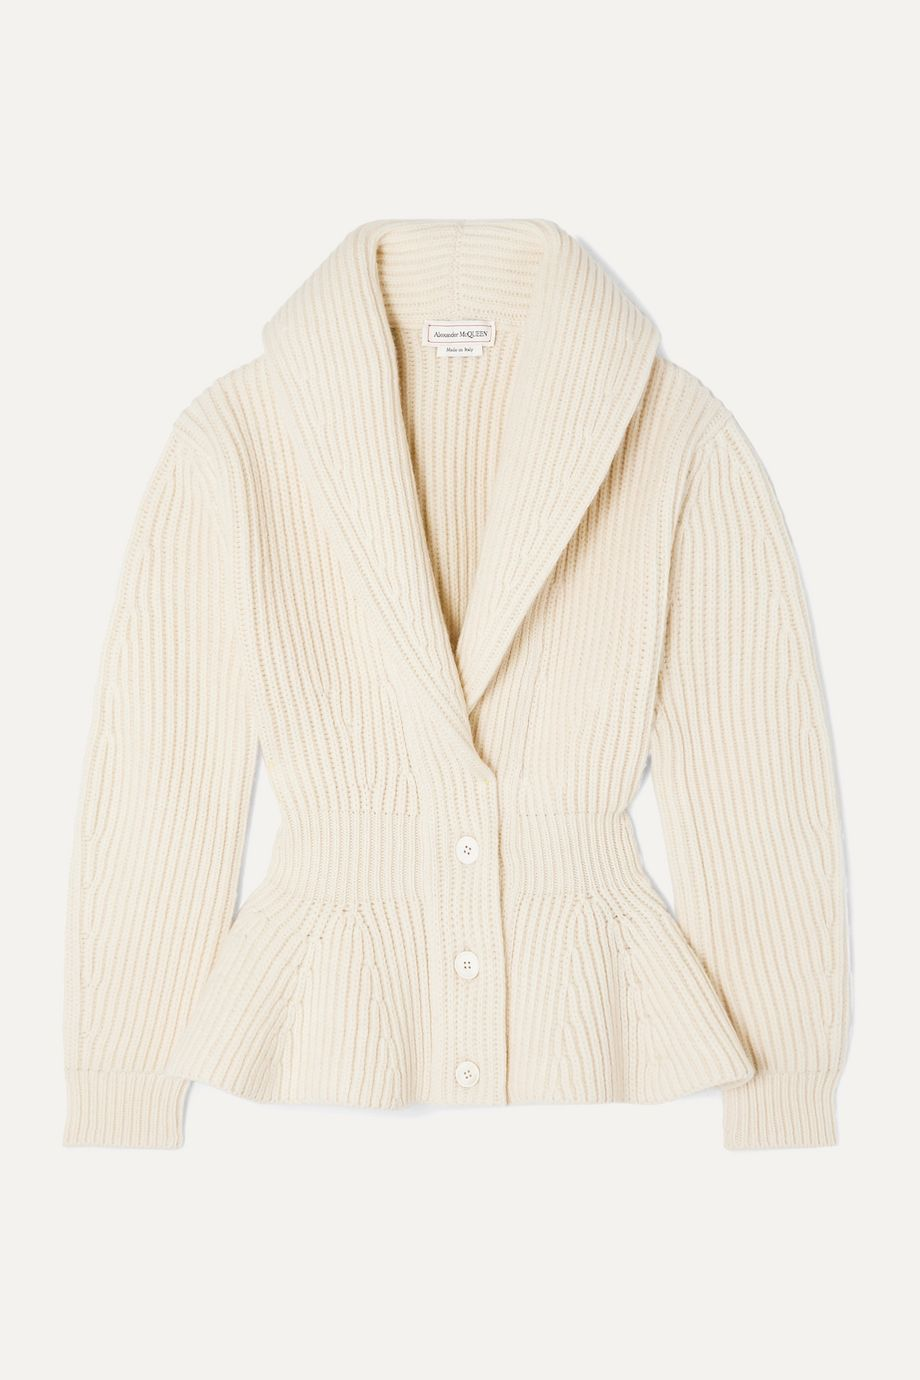 Alexander McQueen Ribbed wool and cashmere-blend peplum cardigan